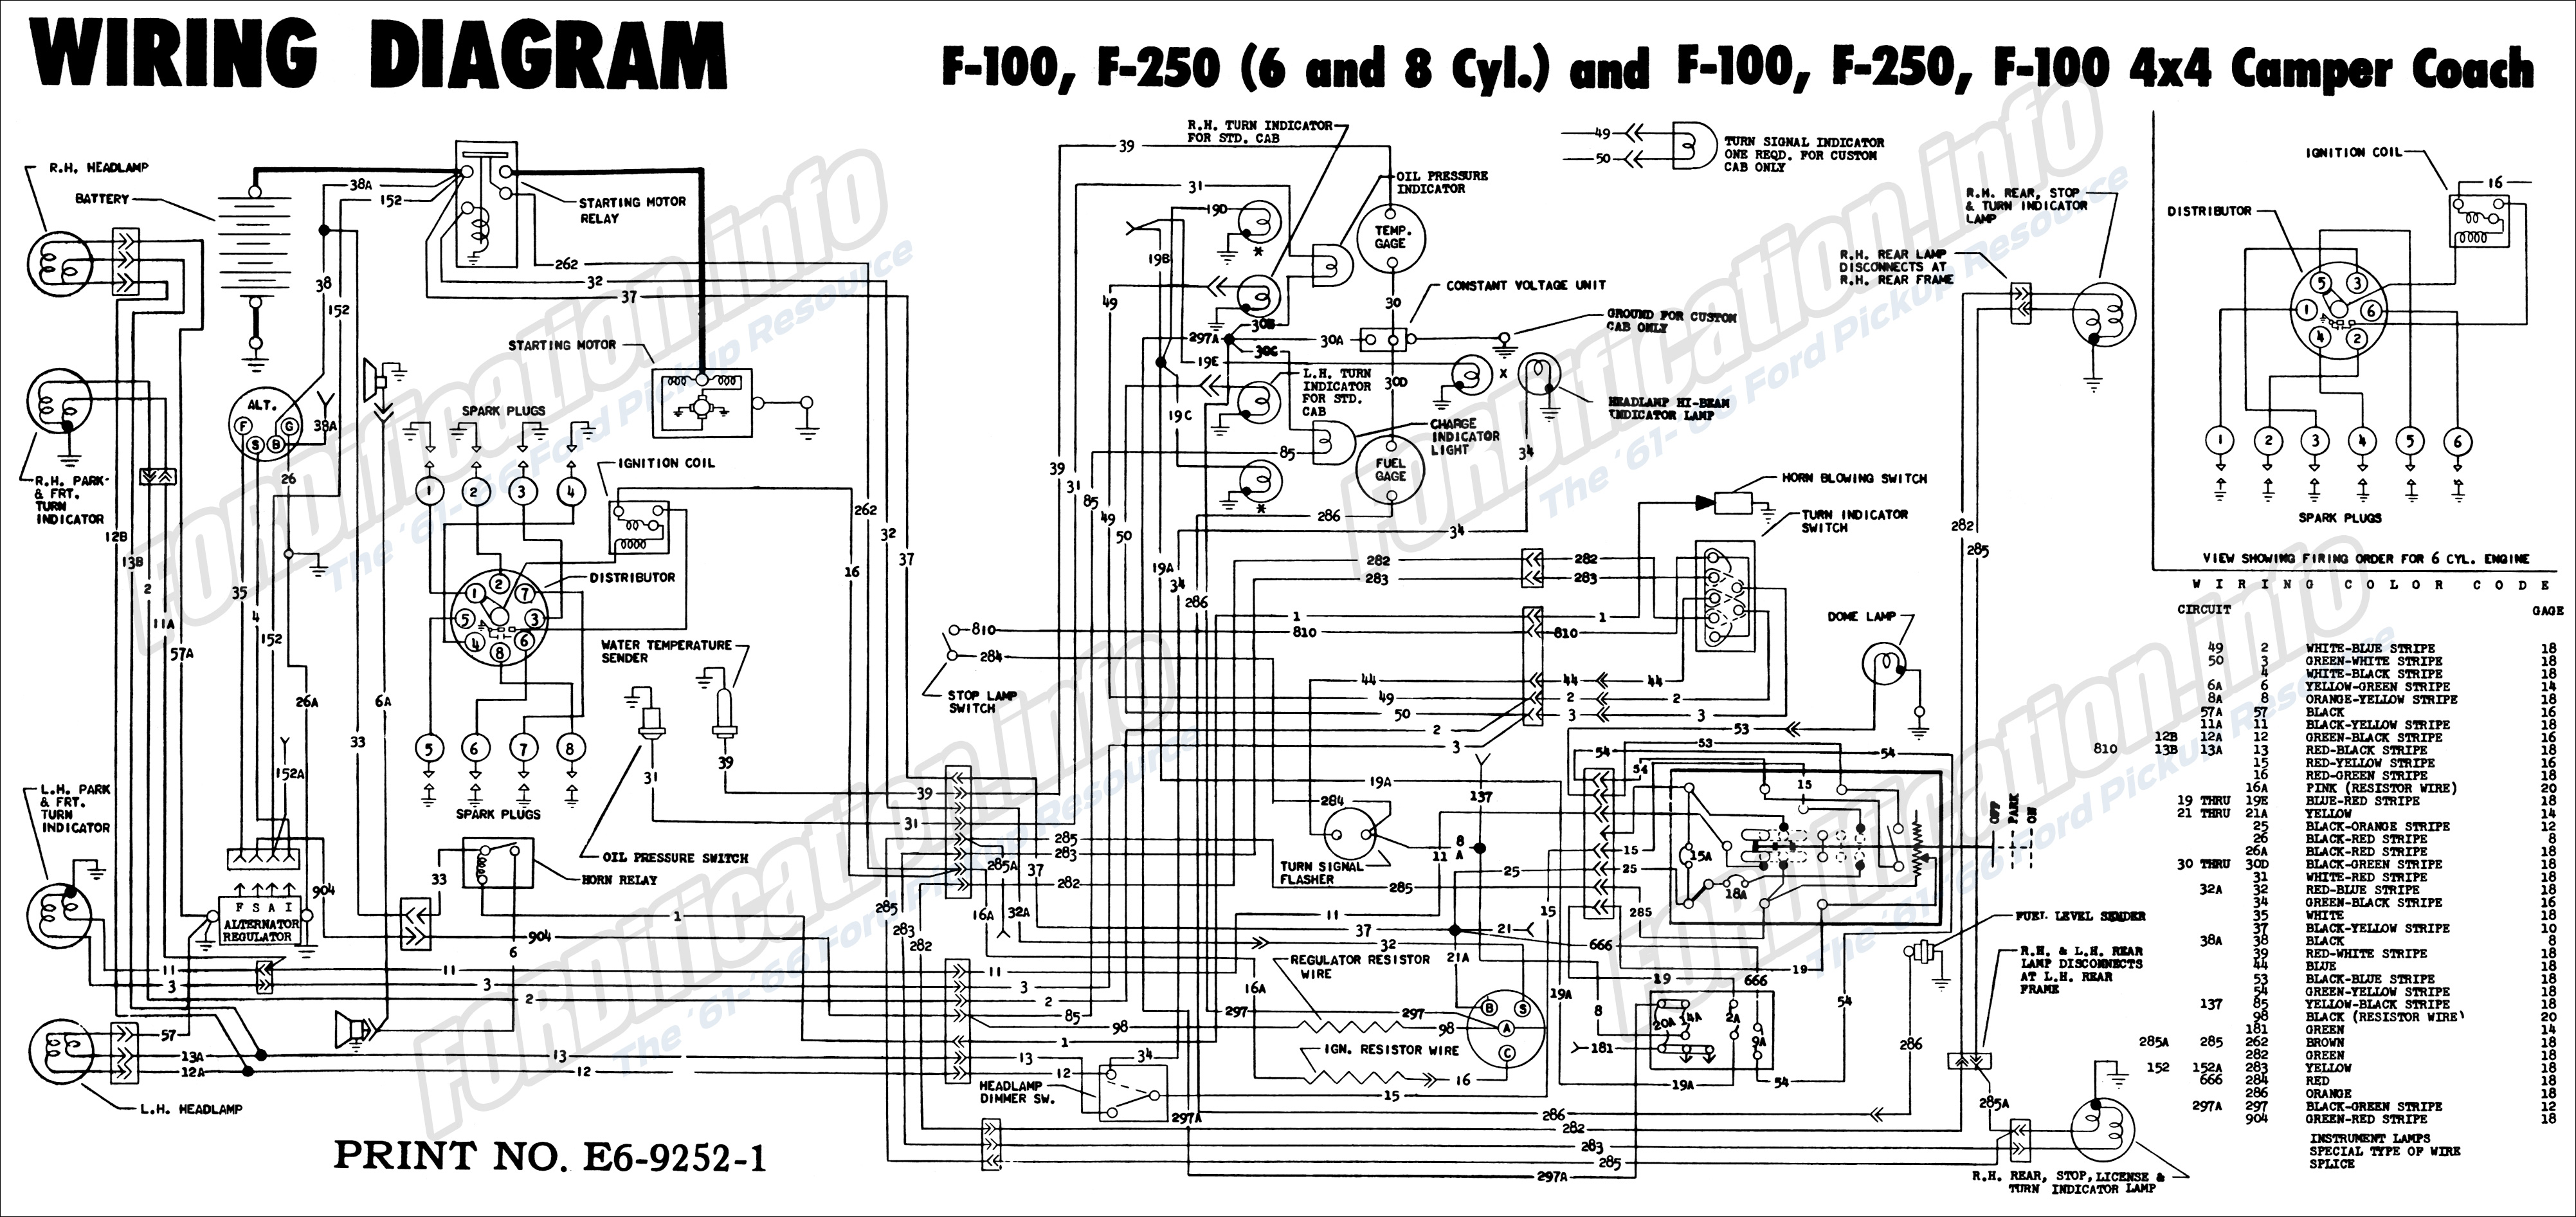 Clic Truck 12 Volt Wiring Diagram 1966 Ford Diagrams The 61 66 Click Here To View Some Notes About This